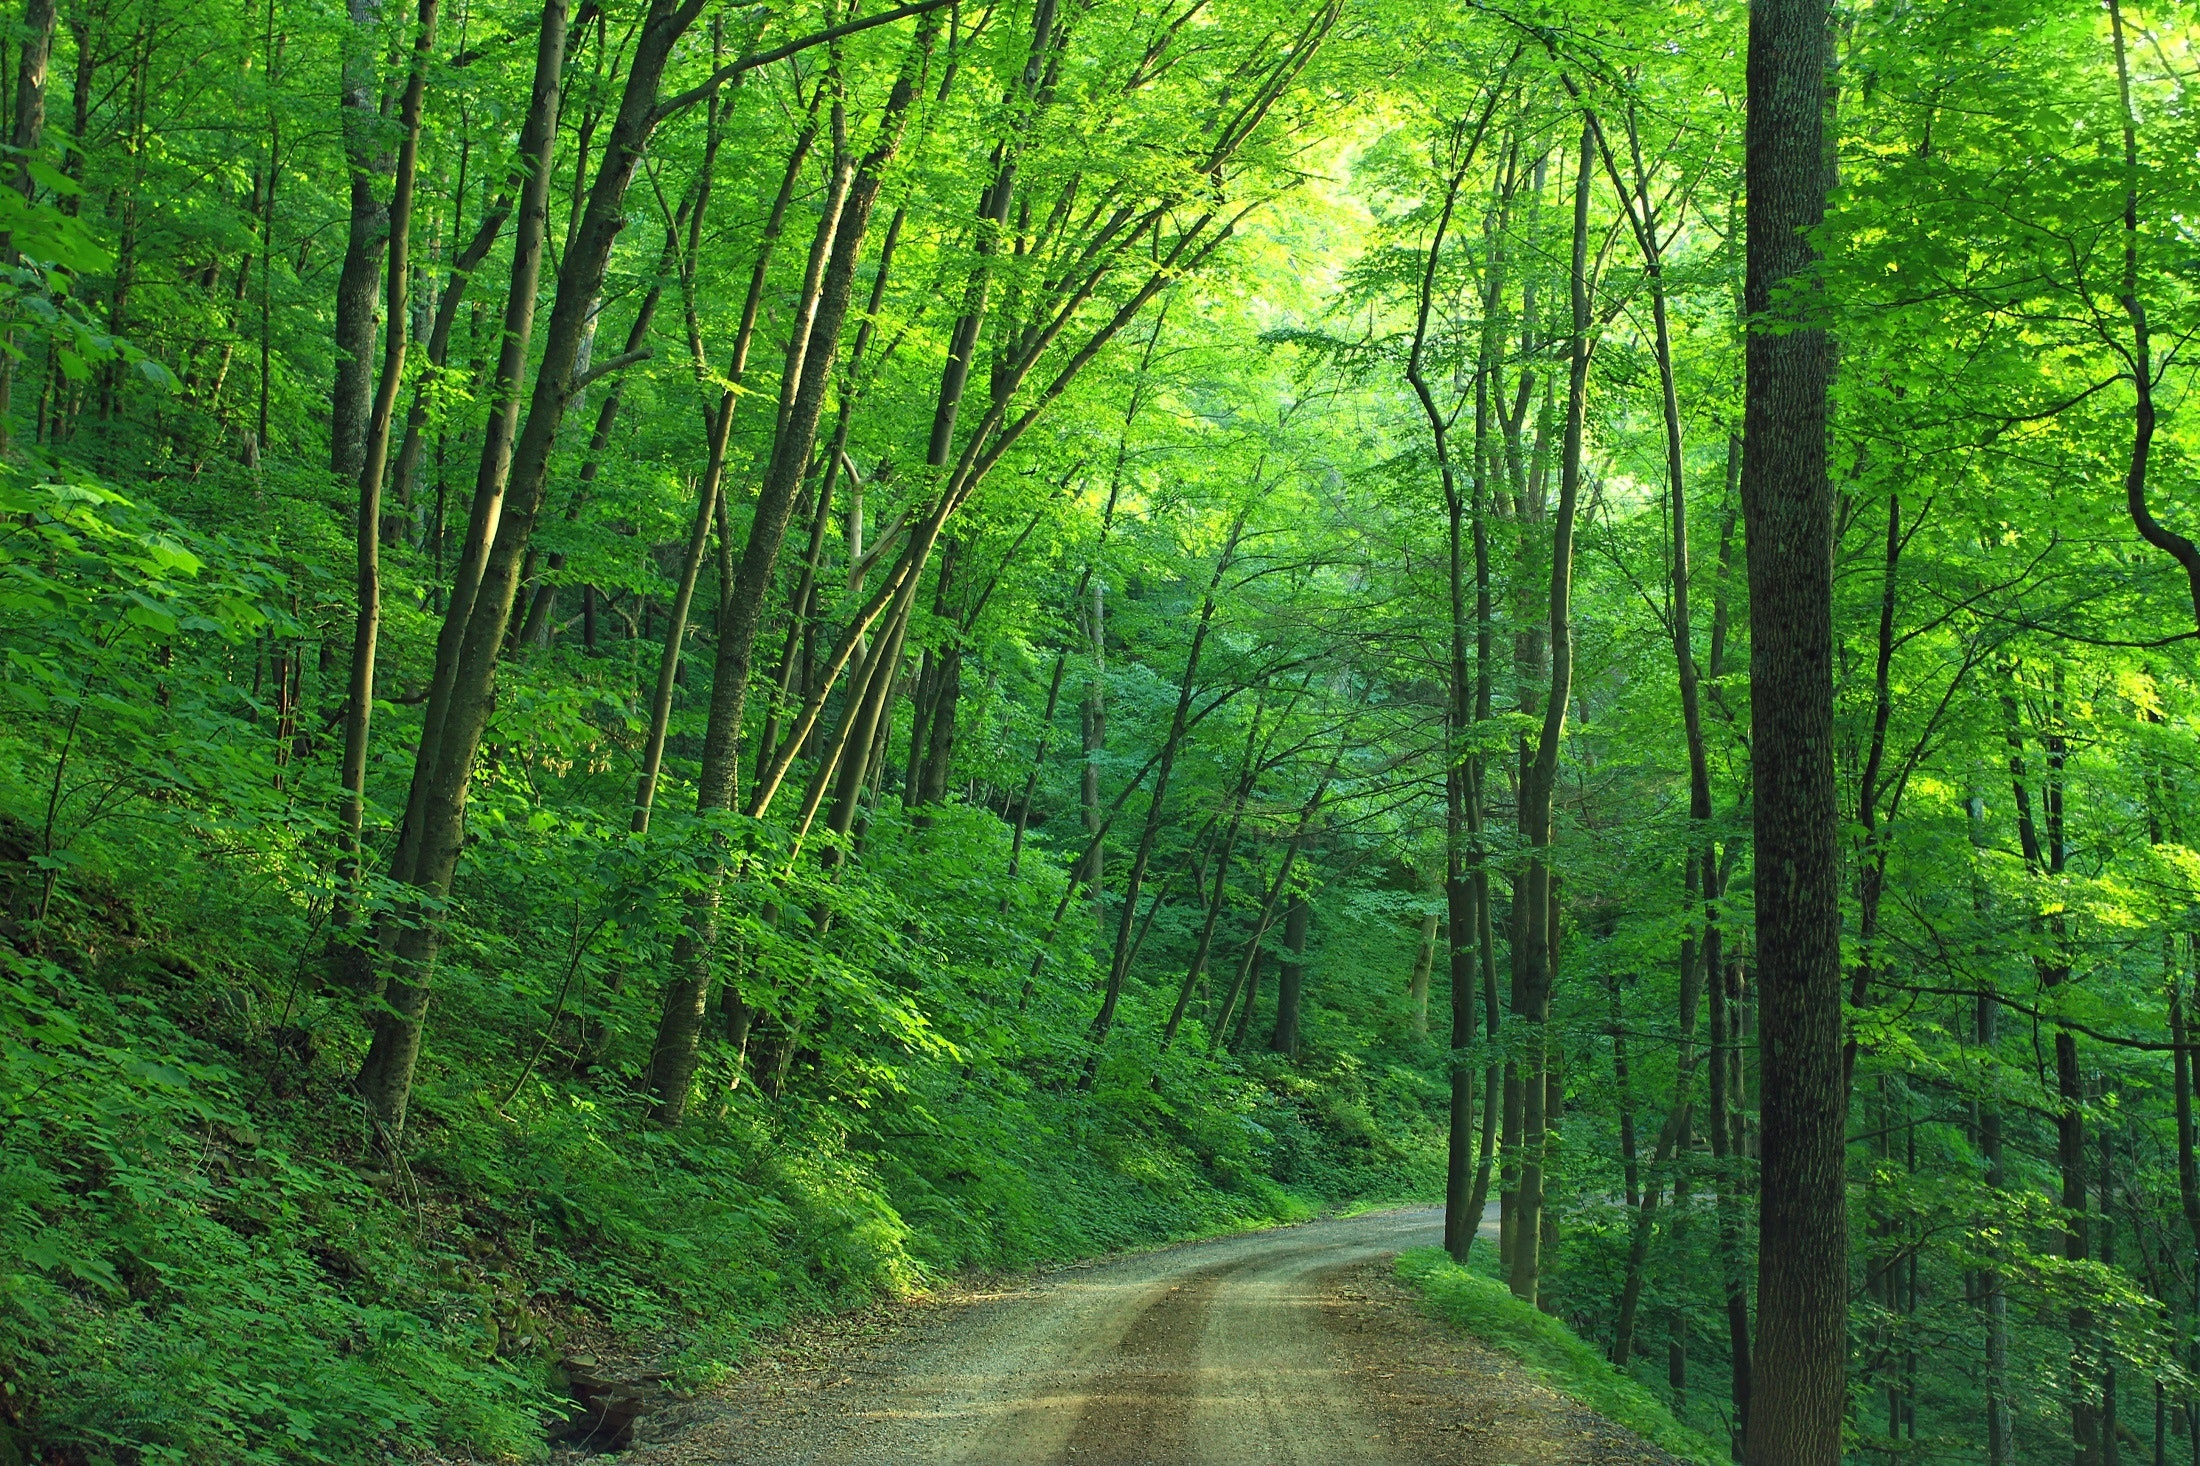 Green Tree Beside Roadway during Daytime, Trail roads, Trail, Tree trunks, Way, HQ Photo